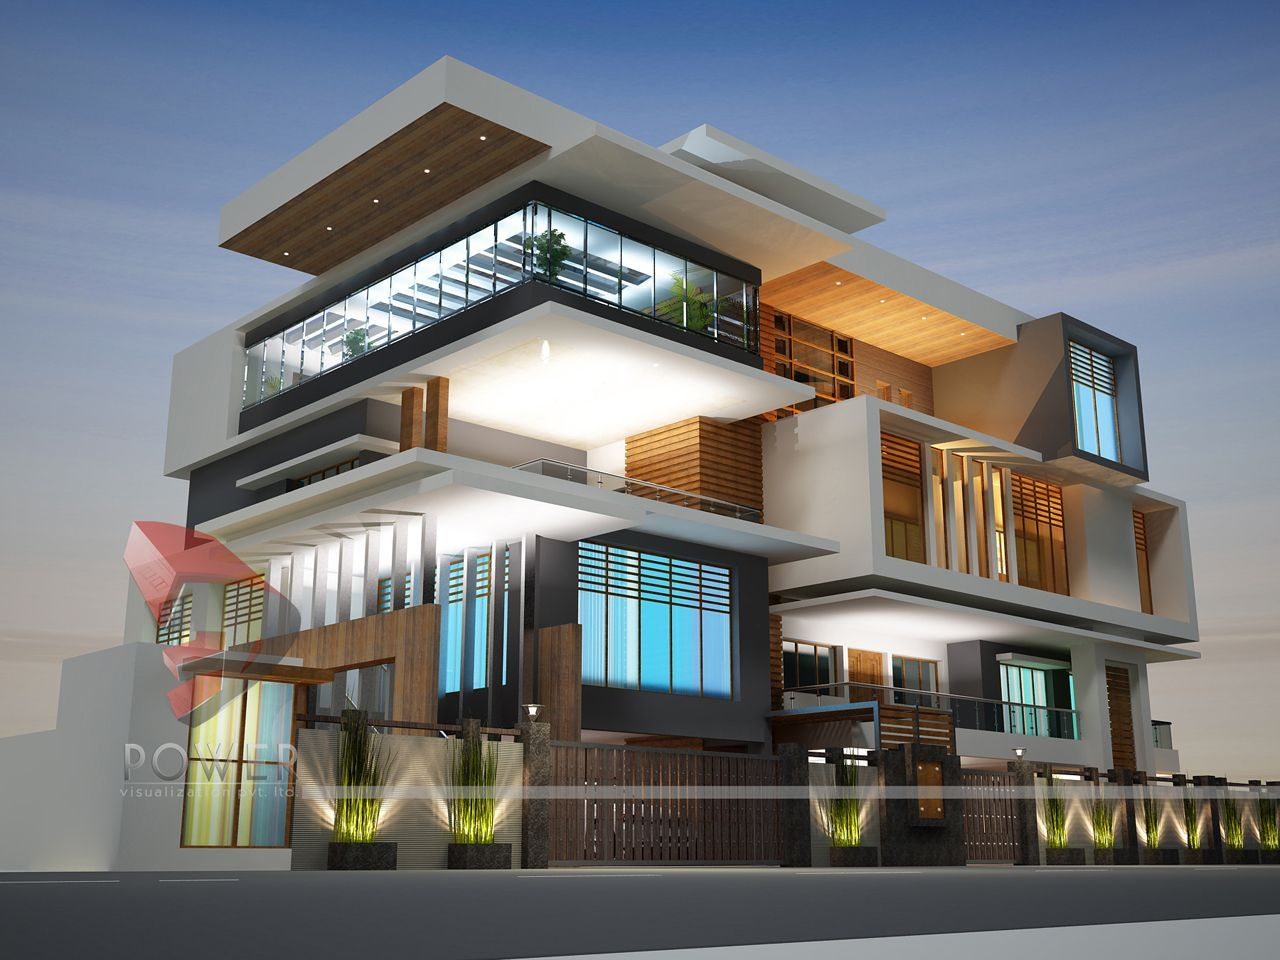 Modern house design in india architecture india modern for Architectural home designs